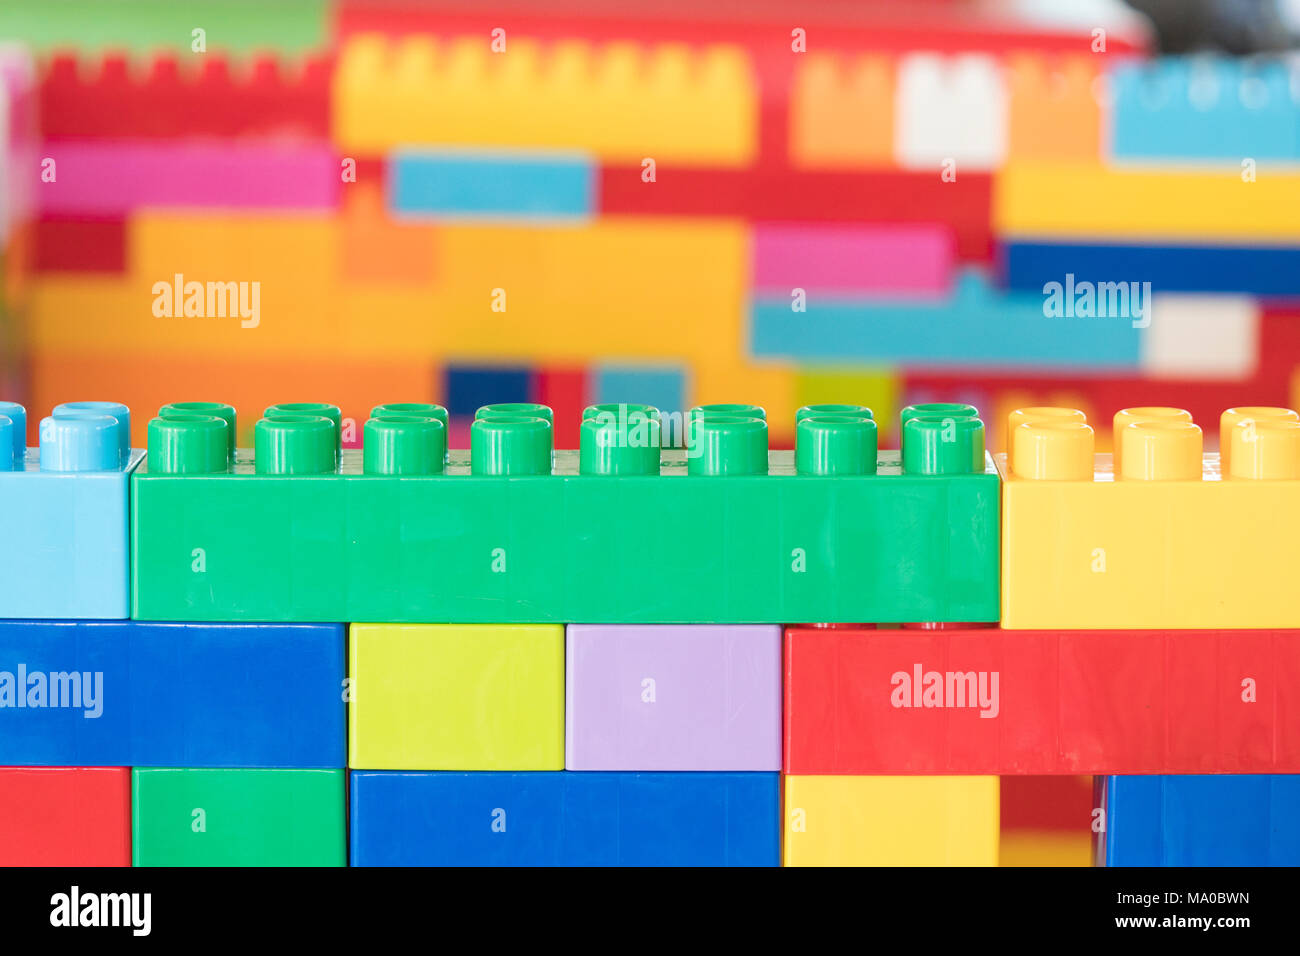 Colorful stacked toy plastic building blocks Stock Photo: 178259585